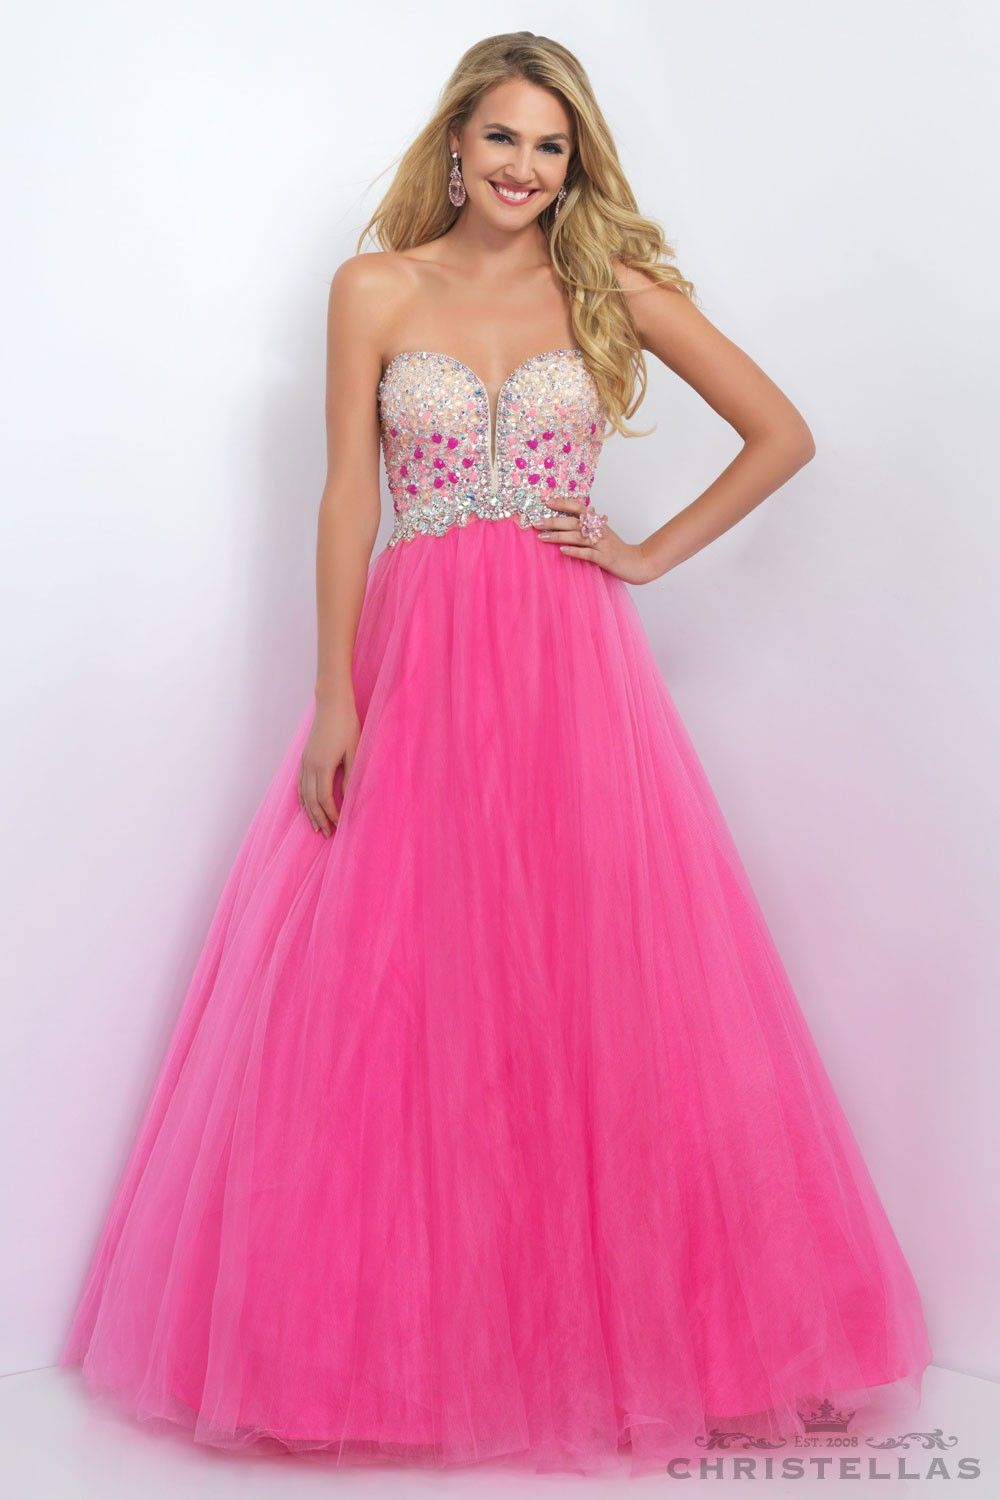 Blush 5506 Dress | Beauty queens, Ball gowns and Blush dresses